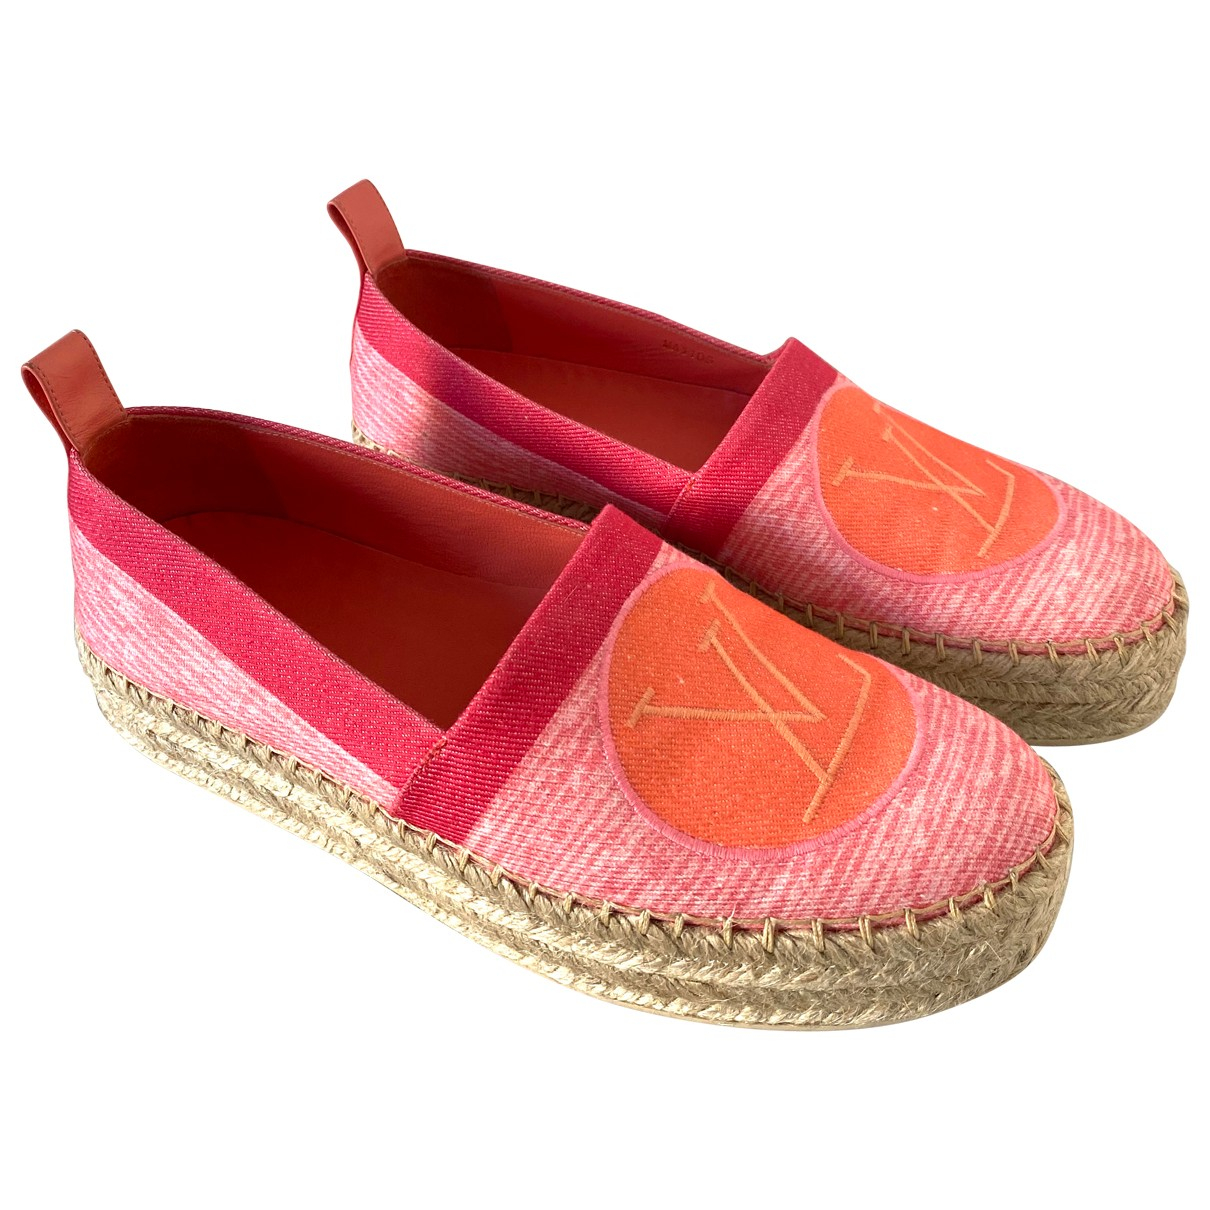 Louis Vuitton Seashore Espadrilles in  Rosa Leinen